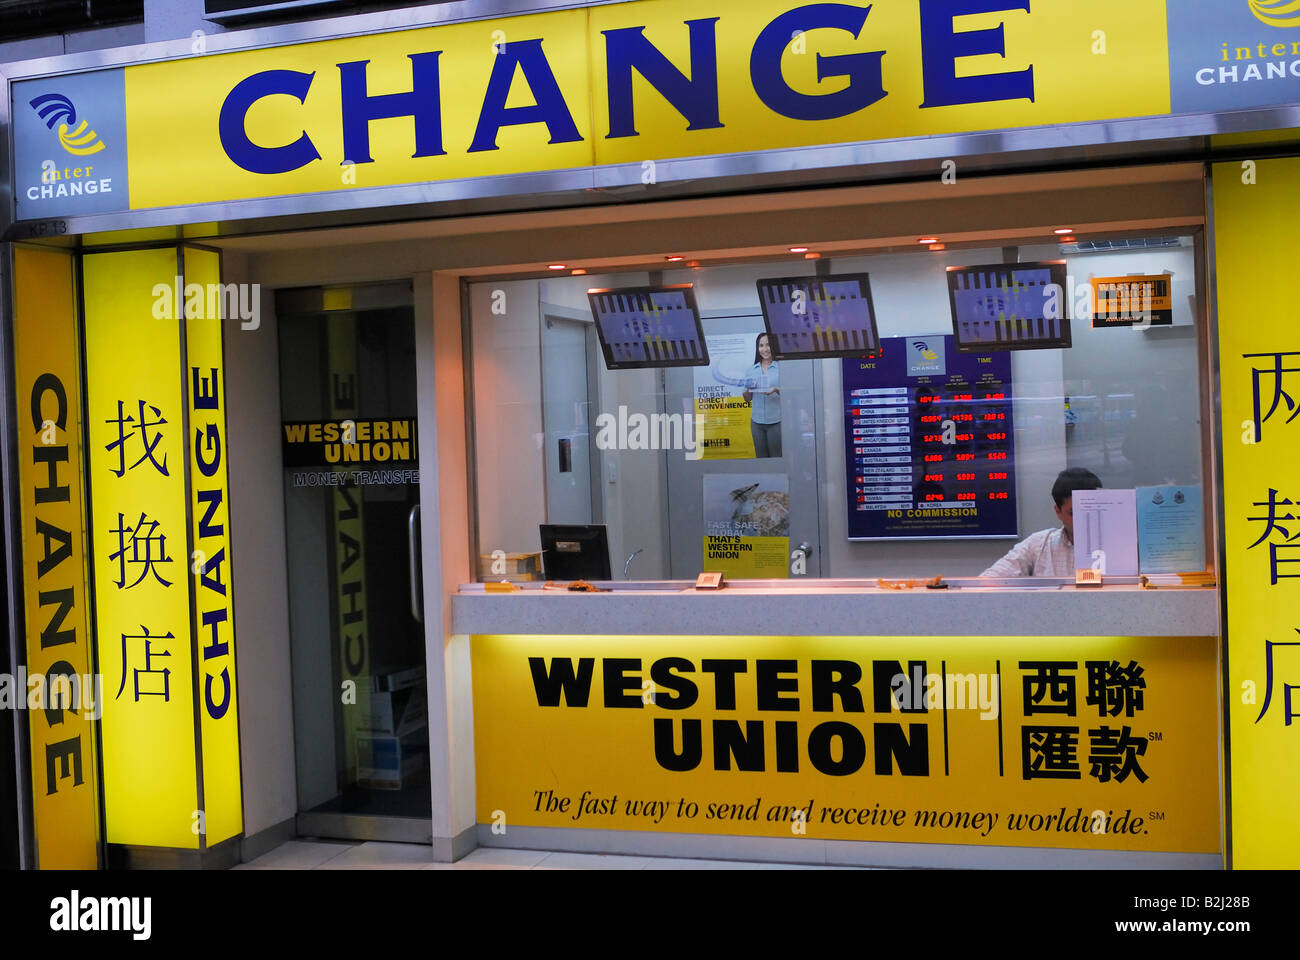 Bureau de change western union bank hongkong chine kowloon banque